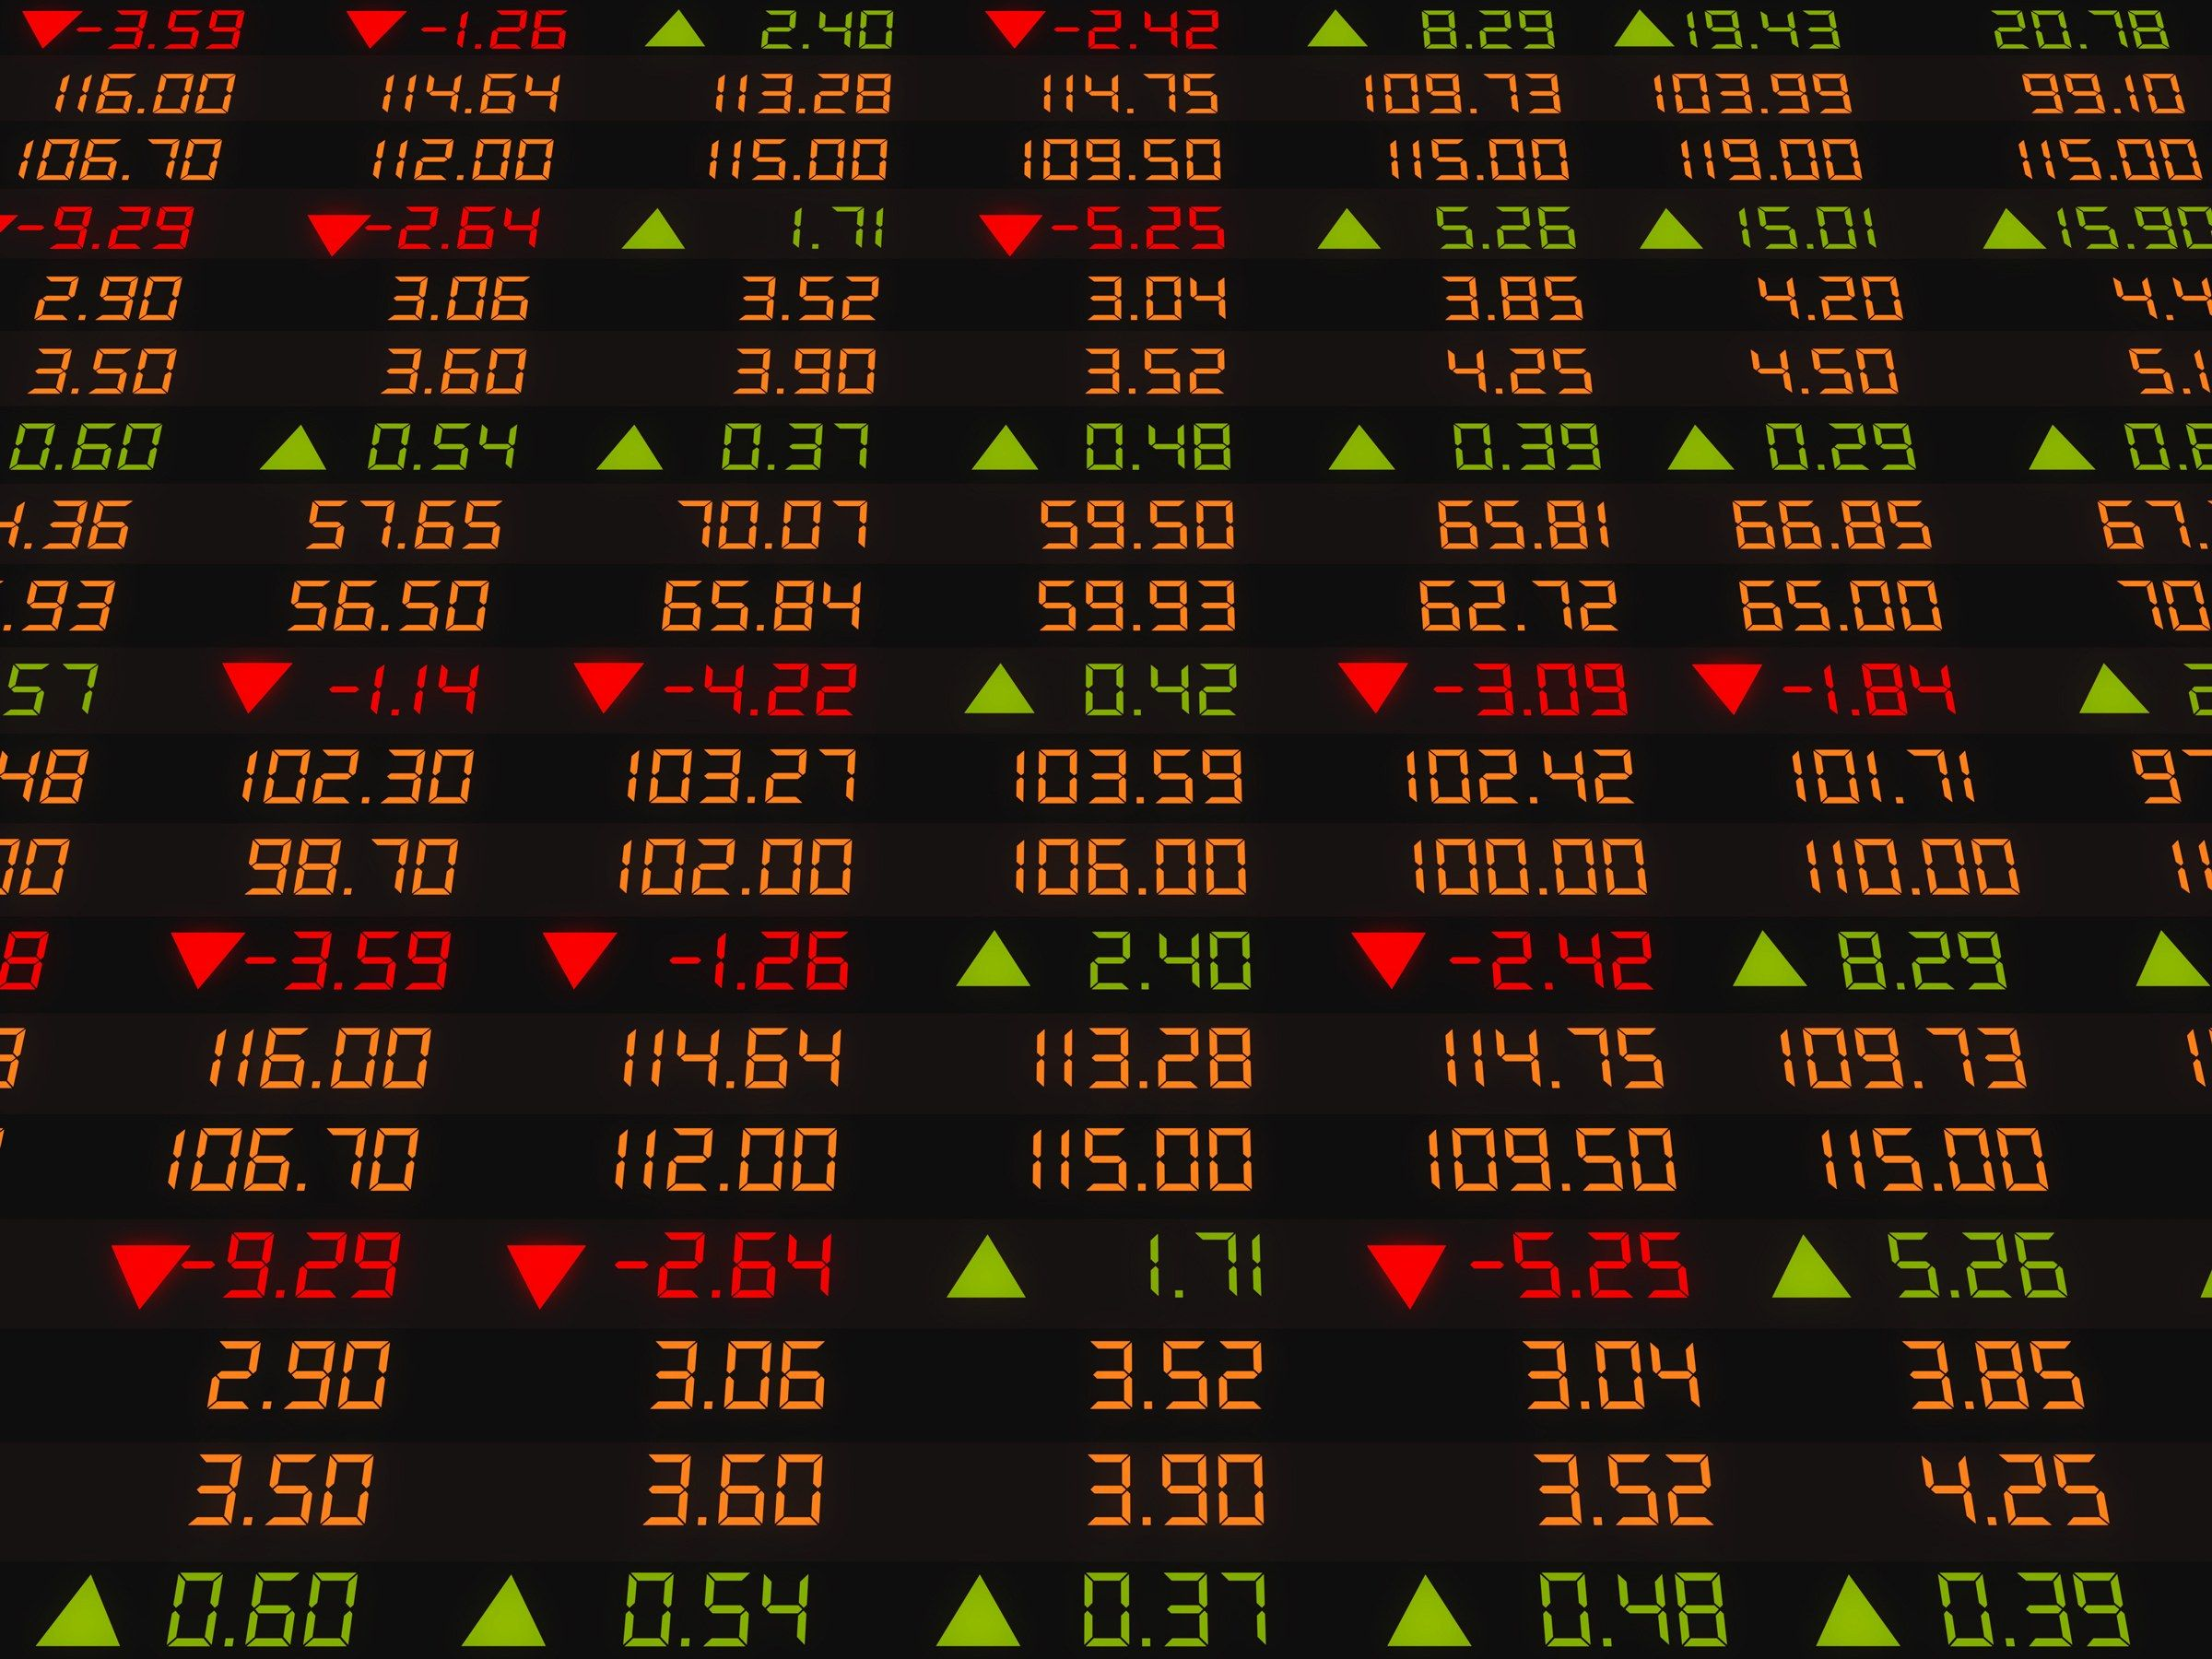 Online Stock Trading Has Serious Security Holes Online Stock